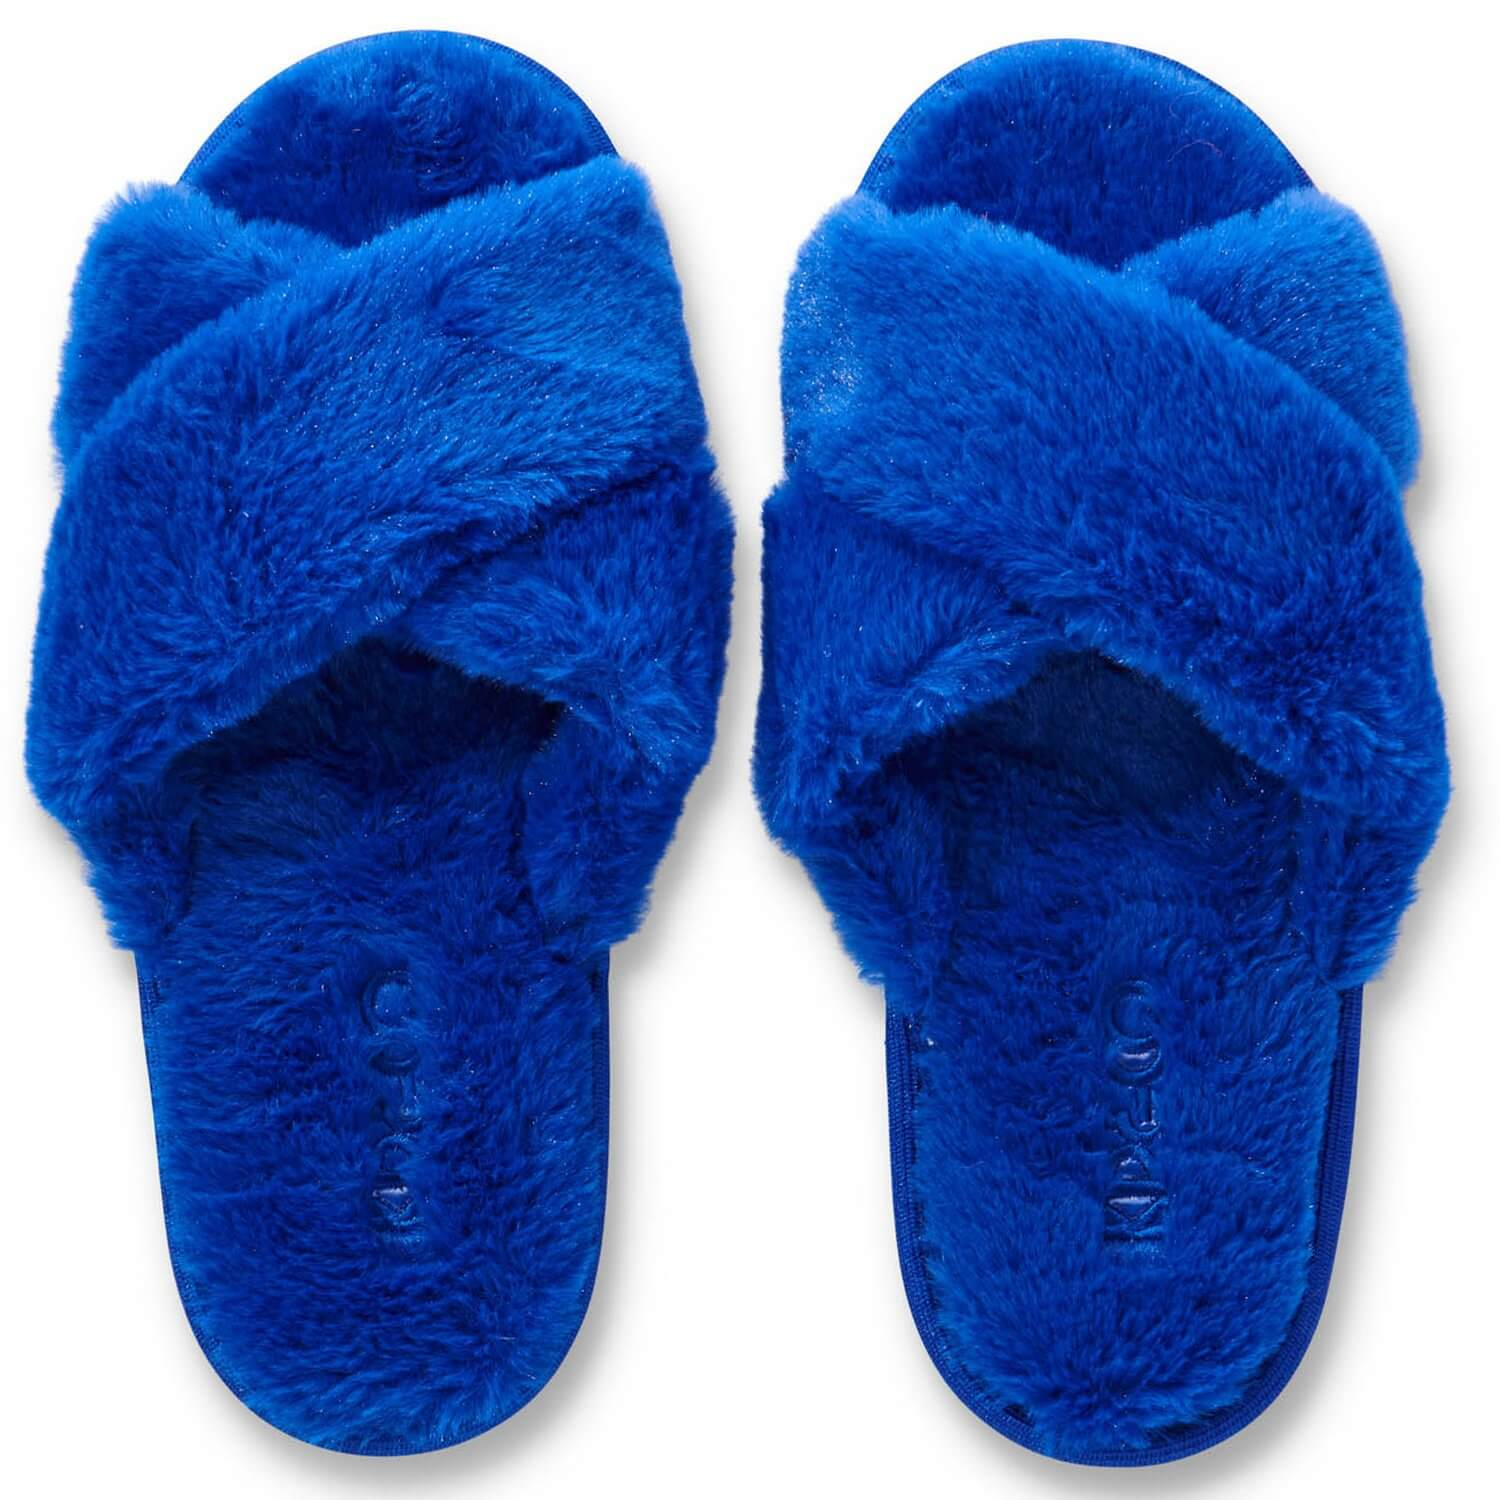 KIP AND CO DAZZLING BLUE SLIPPERS | THE HOME MAVEN